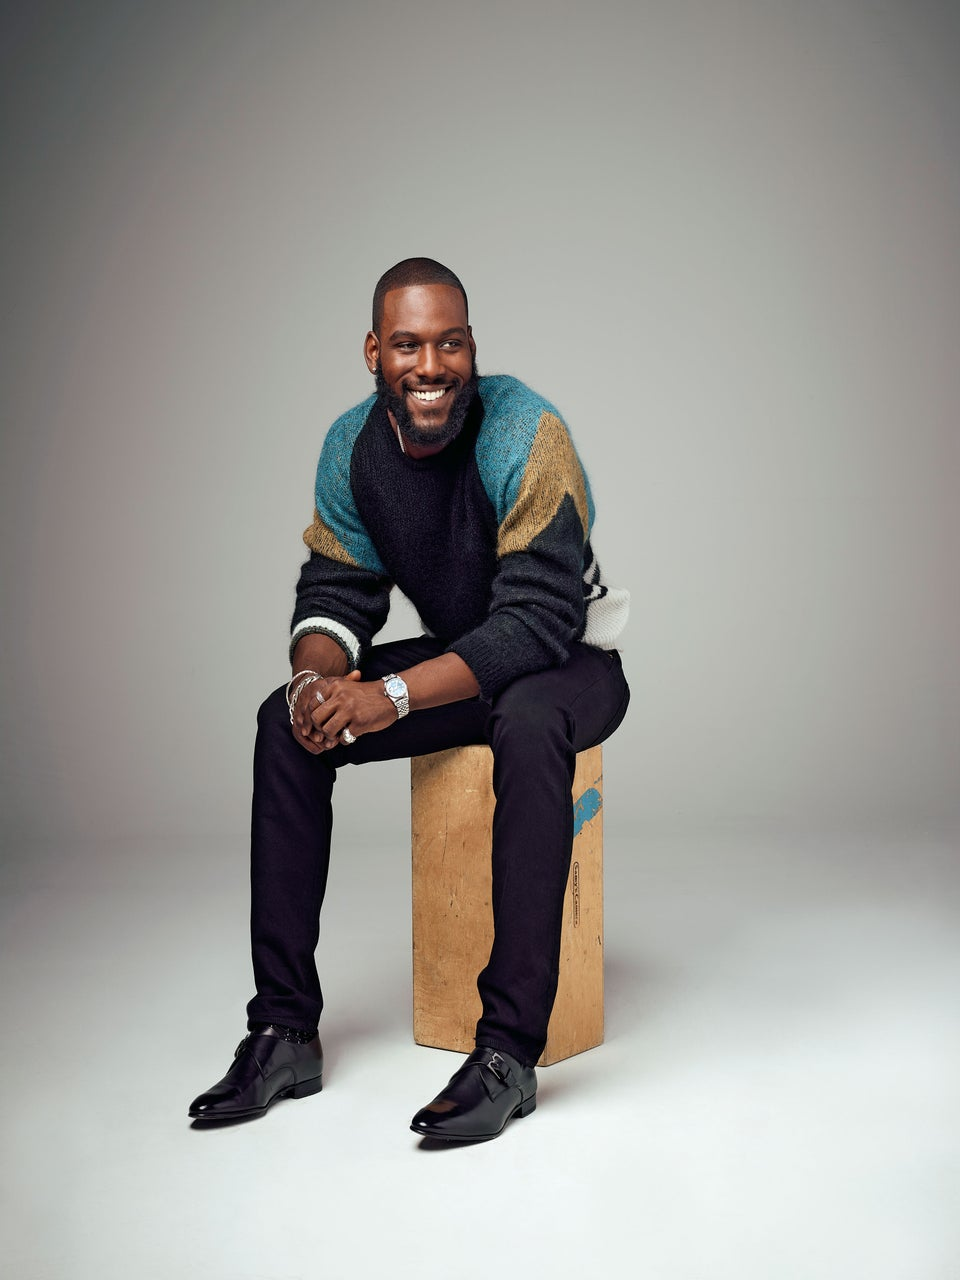 Kofi Siriboe Named One Of PEOPLE Magazine's Sexiest Men Alive Because…Duh!